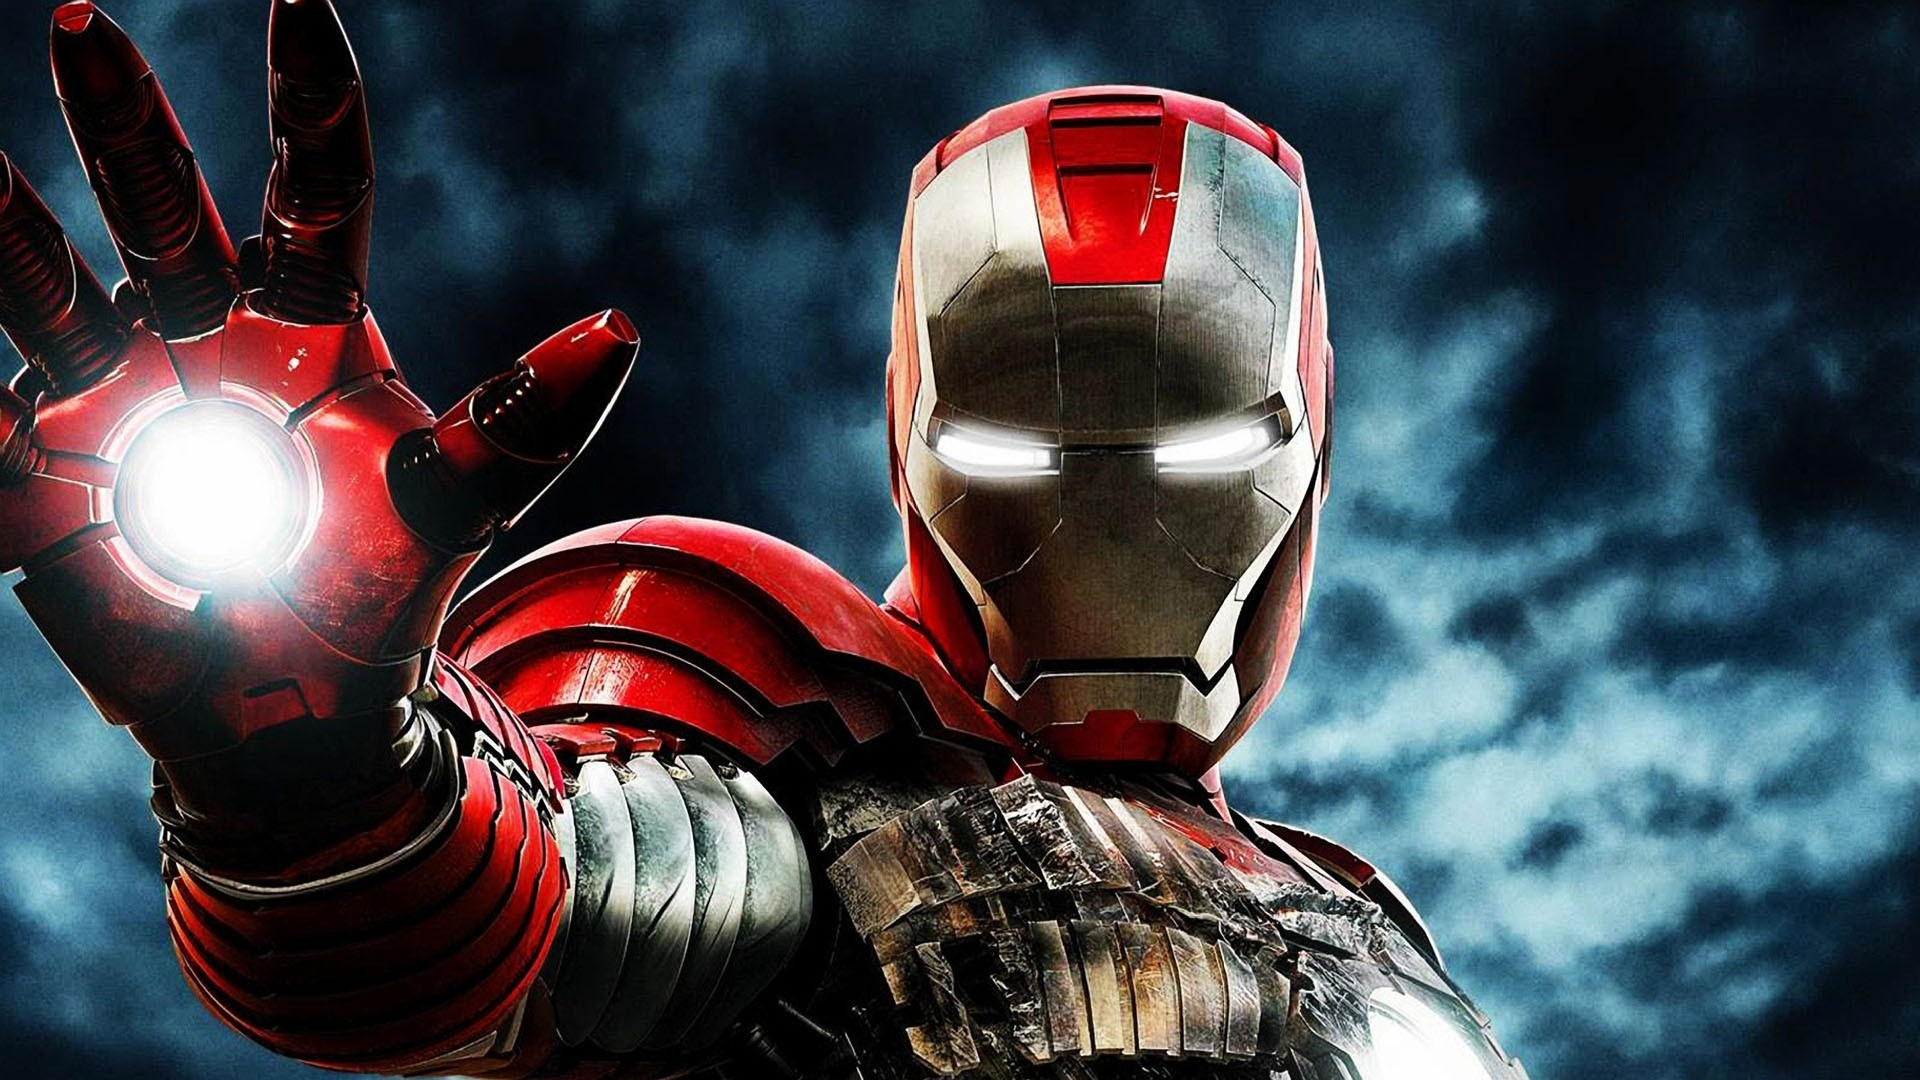 Get the Latest and Amazing Looking Wallpapers of Iron Man 3 in & HD. Find  Free Iron Man 3 Wallpapers, Iron Man 3 pictures, pics and photo.